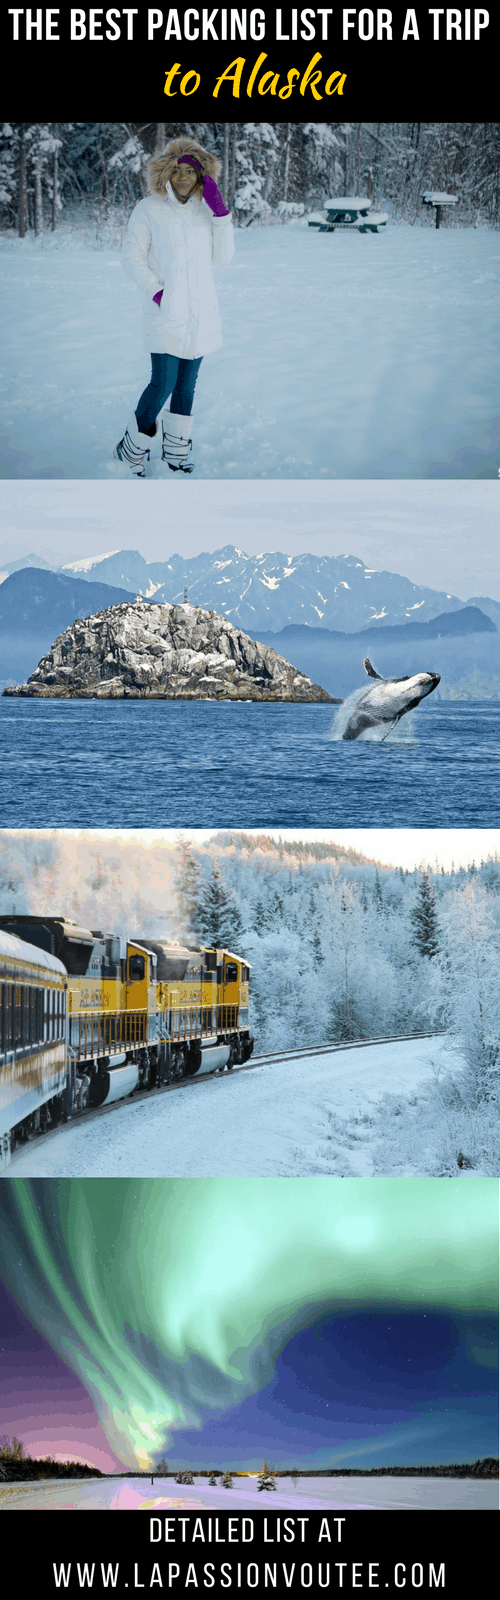 Wondering about what to pack for a trip to Alaska? I live in Alaska and I've covered everything you need for your vacation and things to take on a cruise to Alaska. There's also a free printable packing list to help with your preparation.